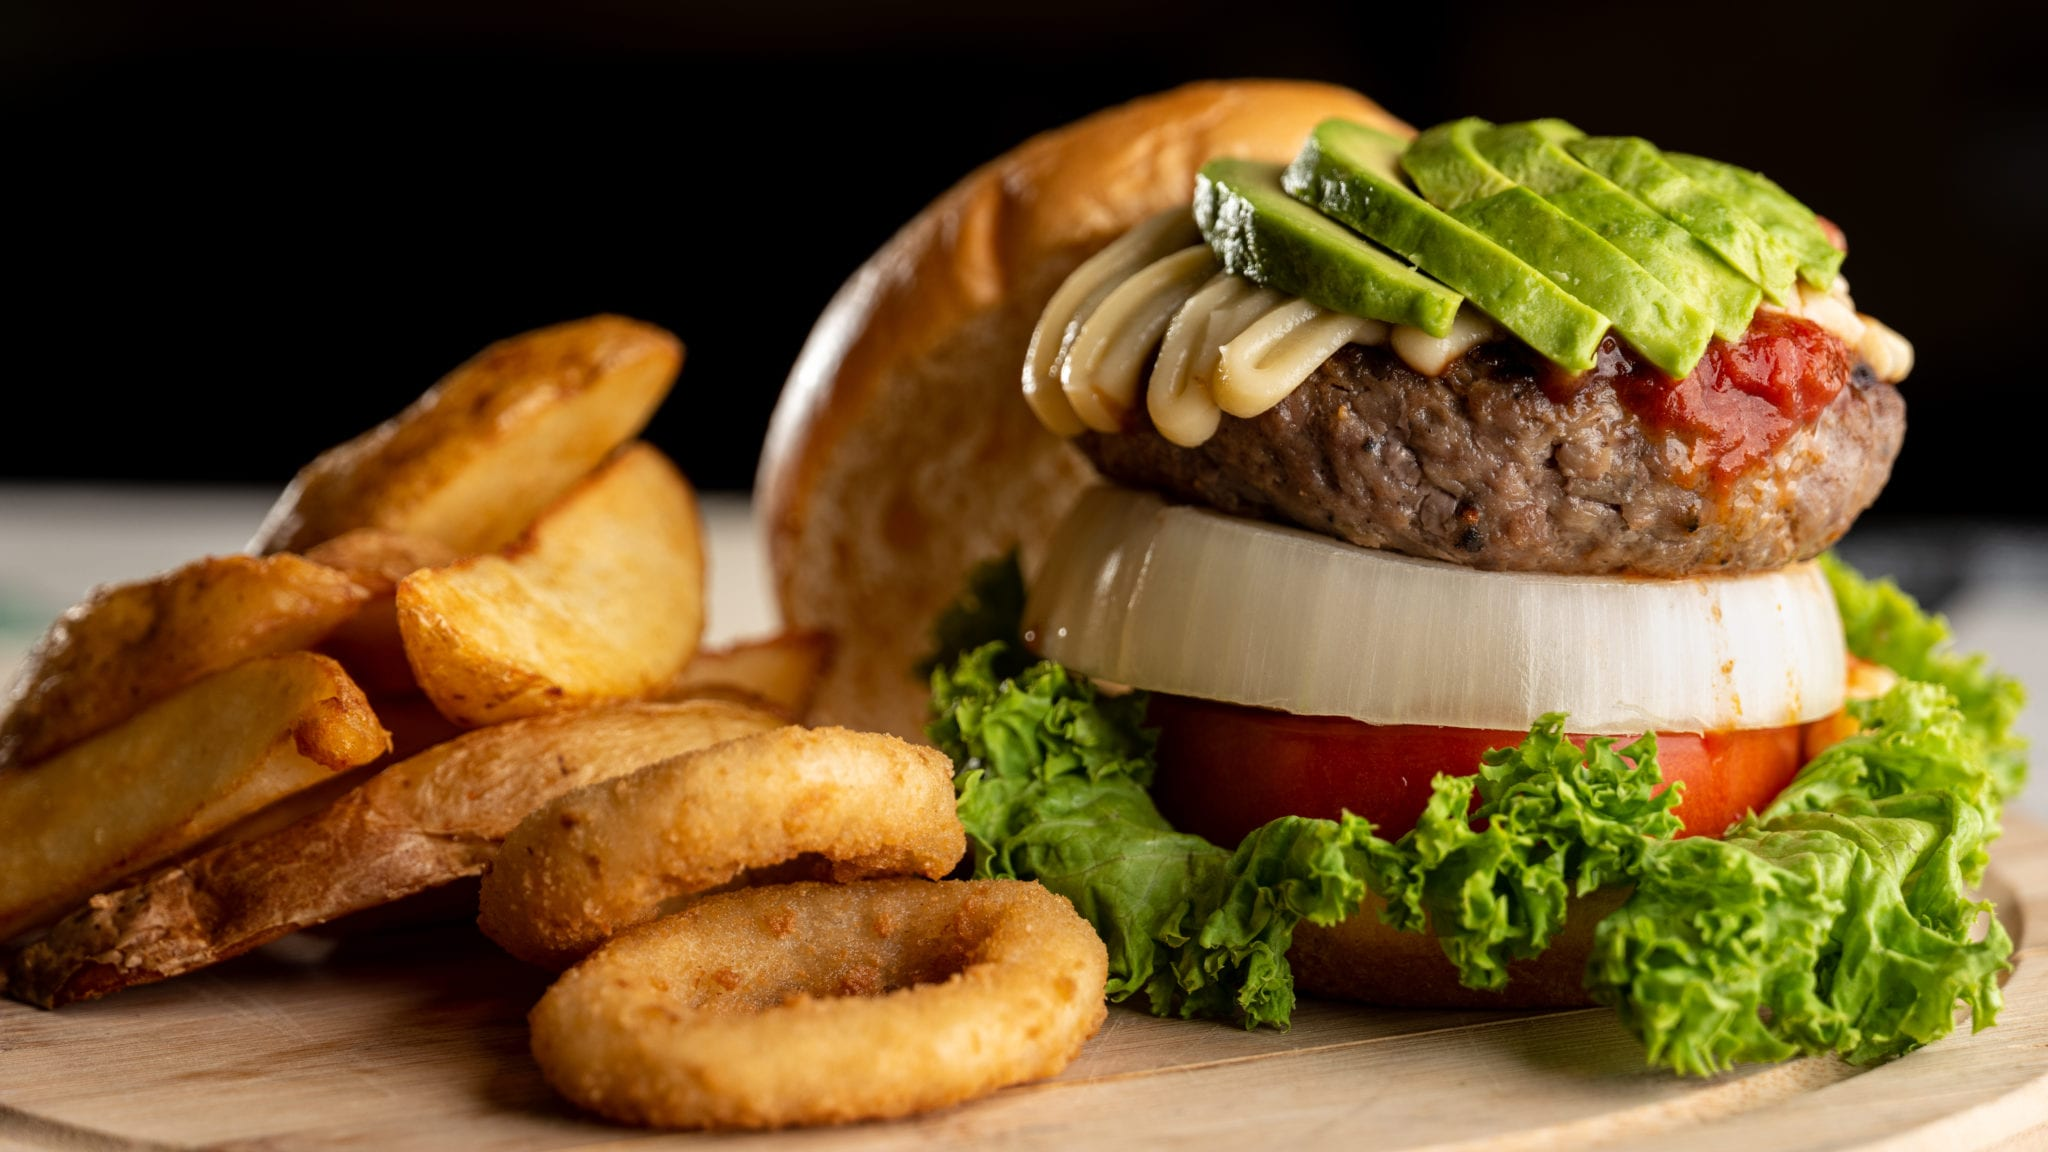 wagyu beef burger with lettuce, tomatoes, onions, avocados and onion rings